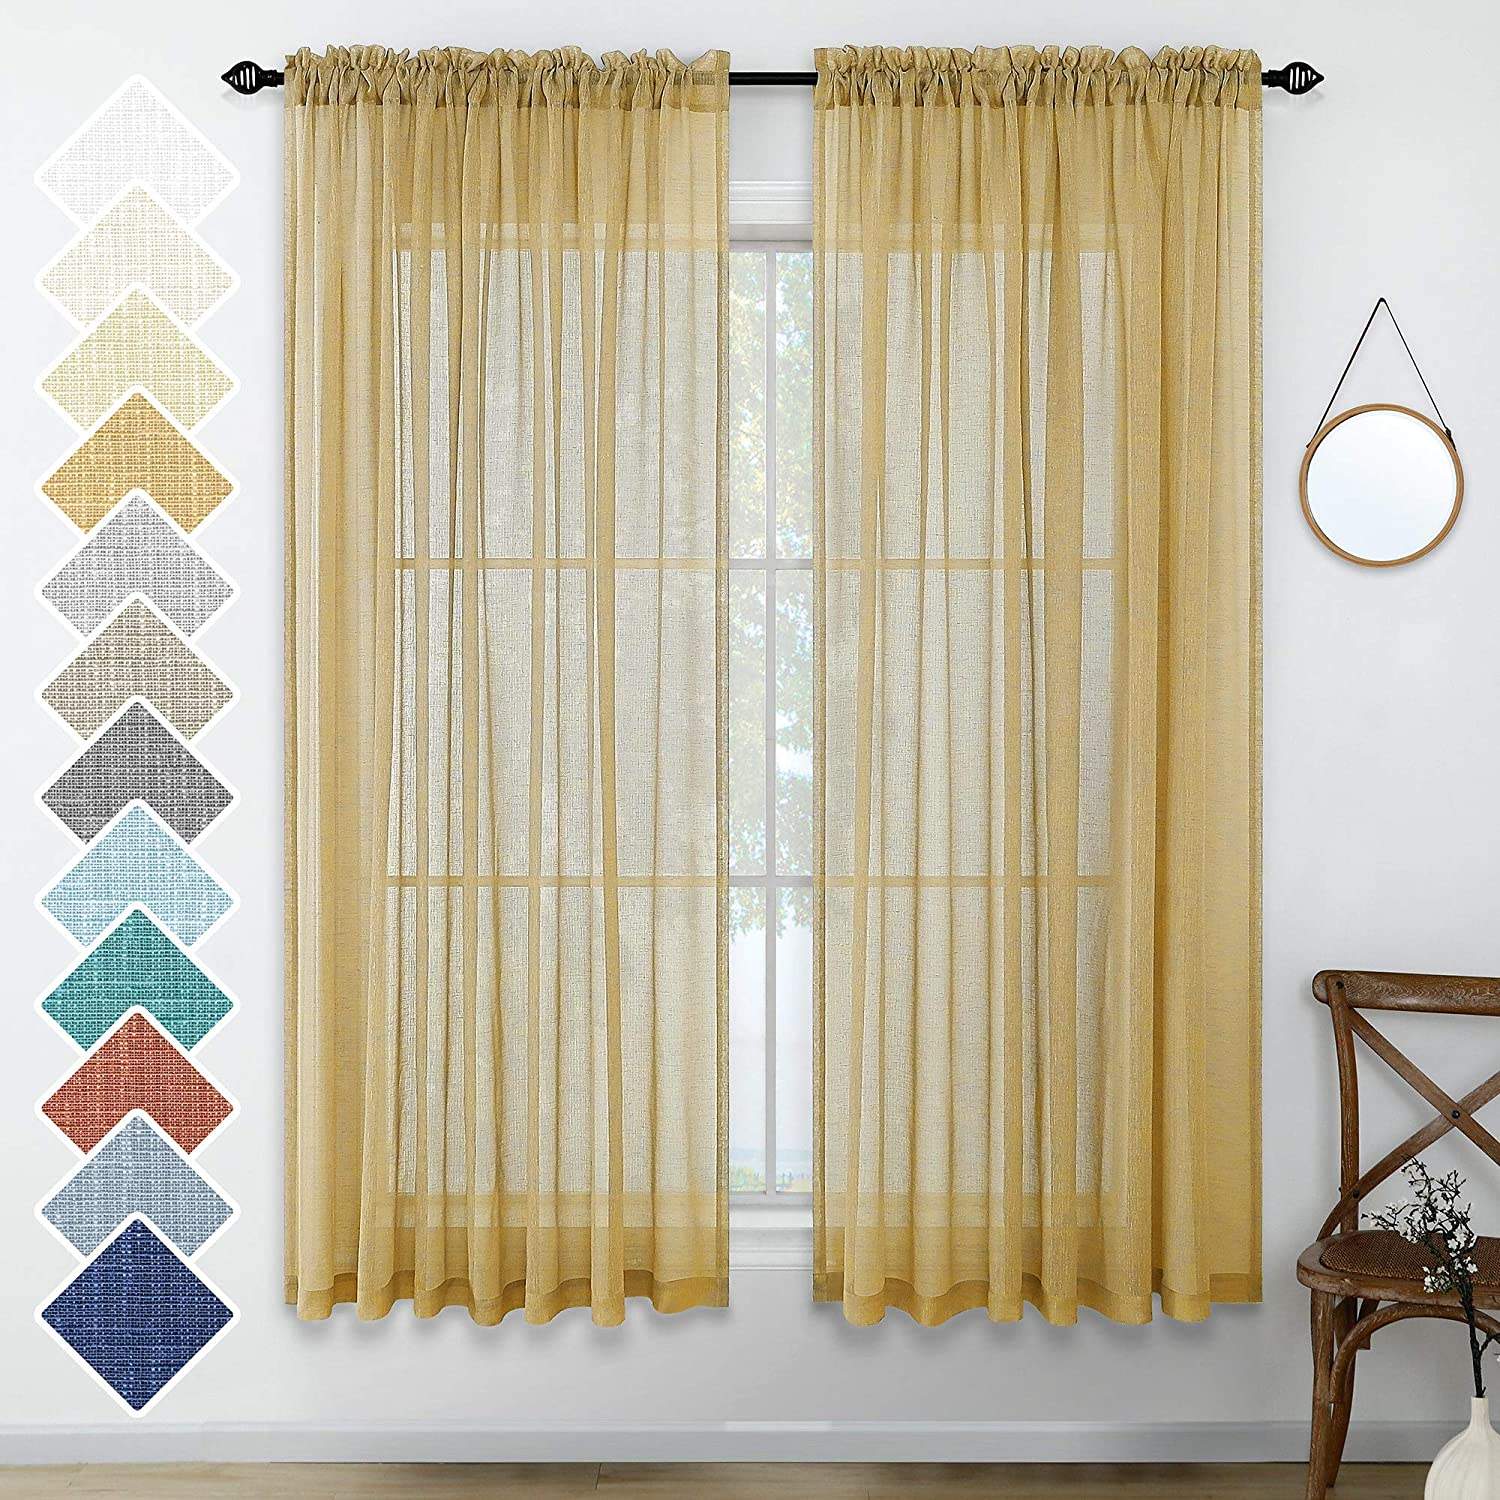 Gold Sheer Curtains for Kitchen 63 Inch Length Pair Set Rod Pocket Light Filtering Semi Transparent Window Drapes Gold Yellow Curtains for Bedroom Living Room Home Office Farmhouse Rustic 52x63 Long